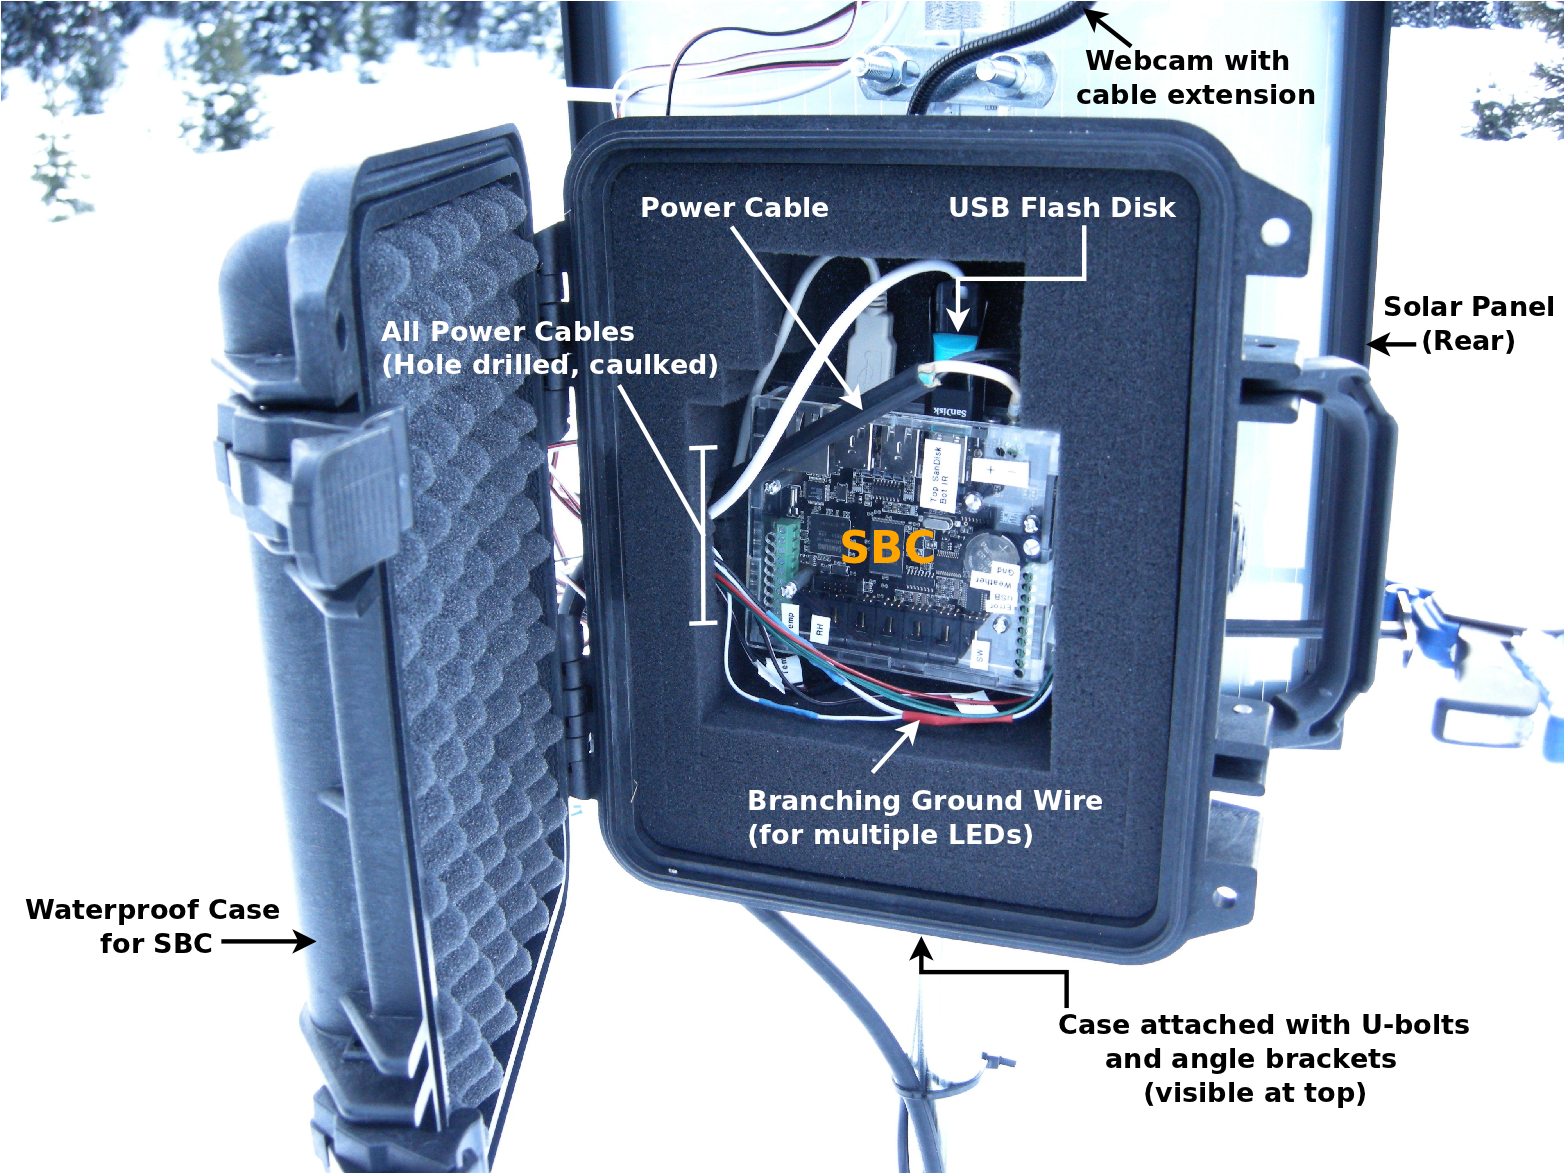 Phidgets Projects Weather Station With Sbc Ground Wiring Diagram It Is Good To Check Your Code Very Carefully Before Installing But If Something Doesnt Go Right You Can Always Remove The Transport Home Fix